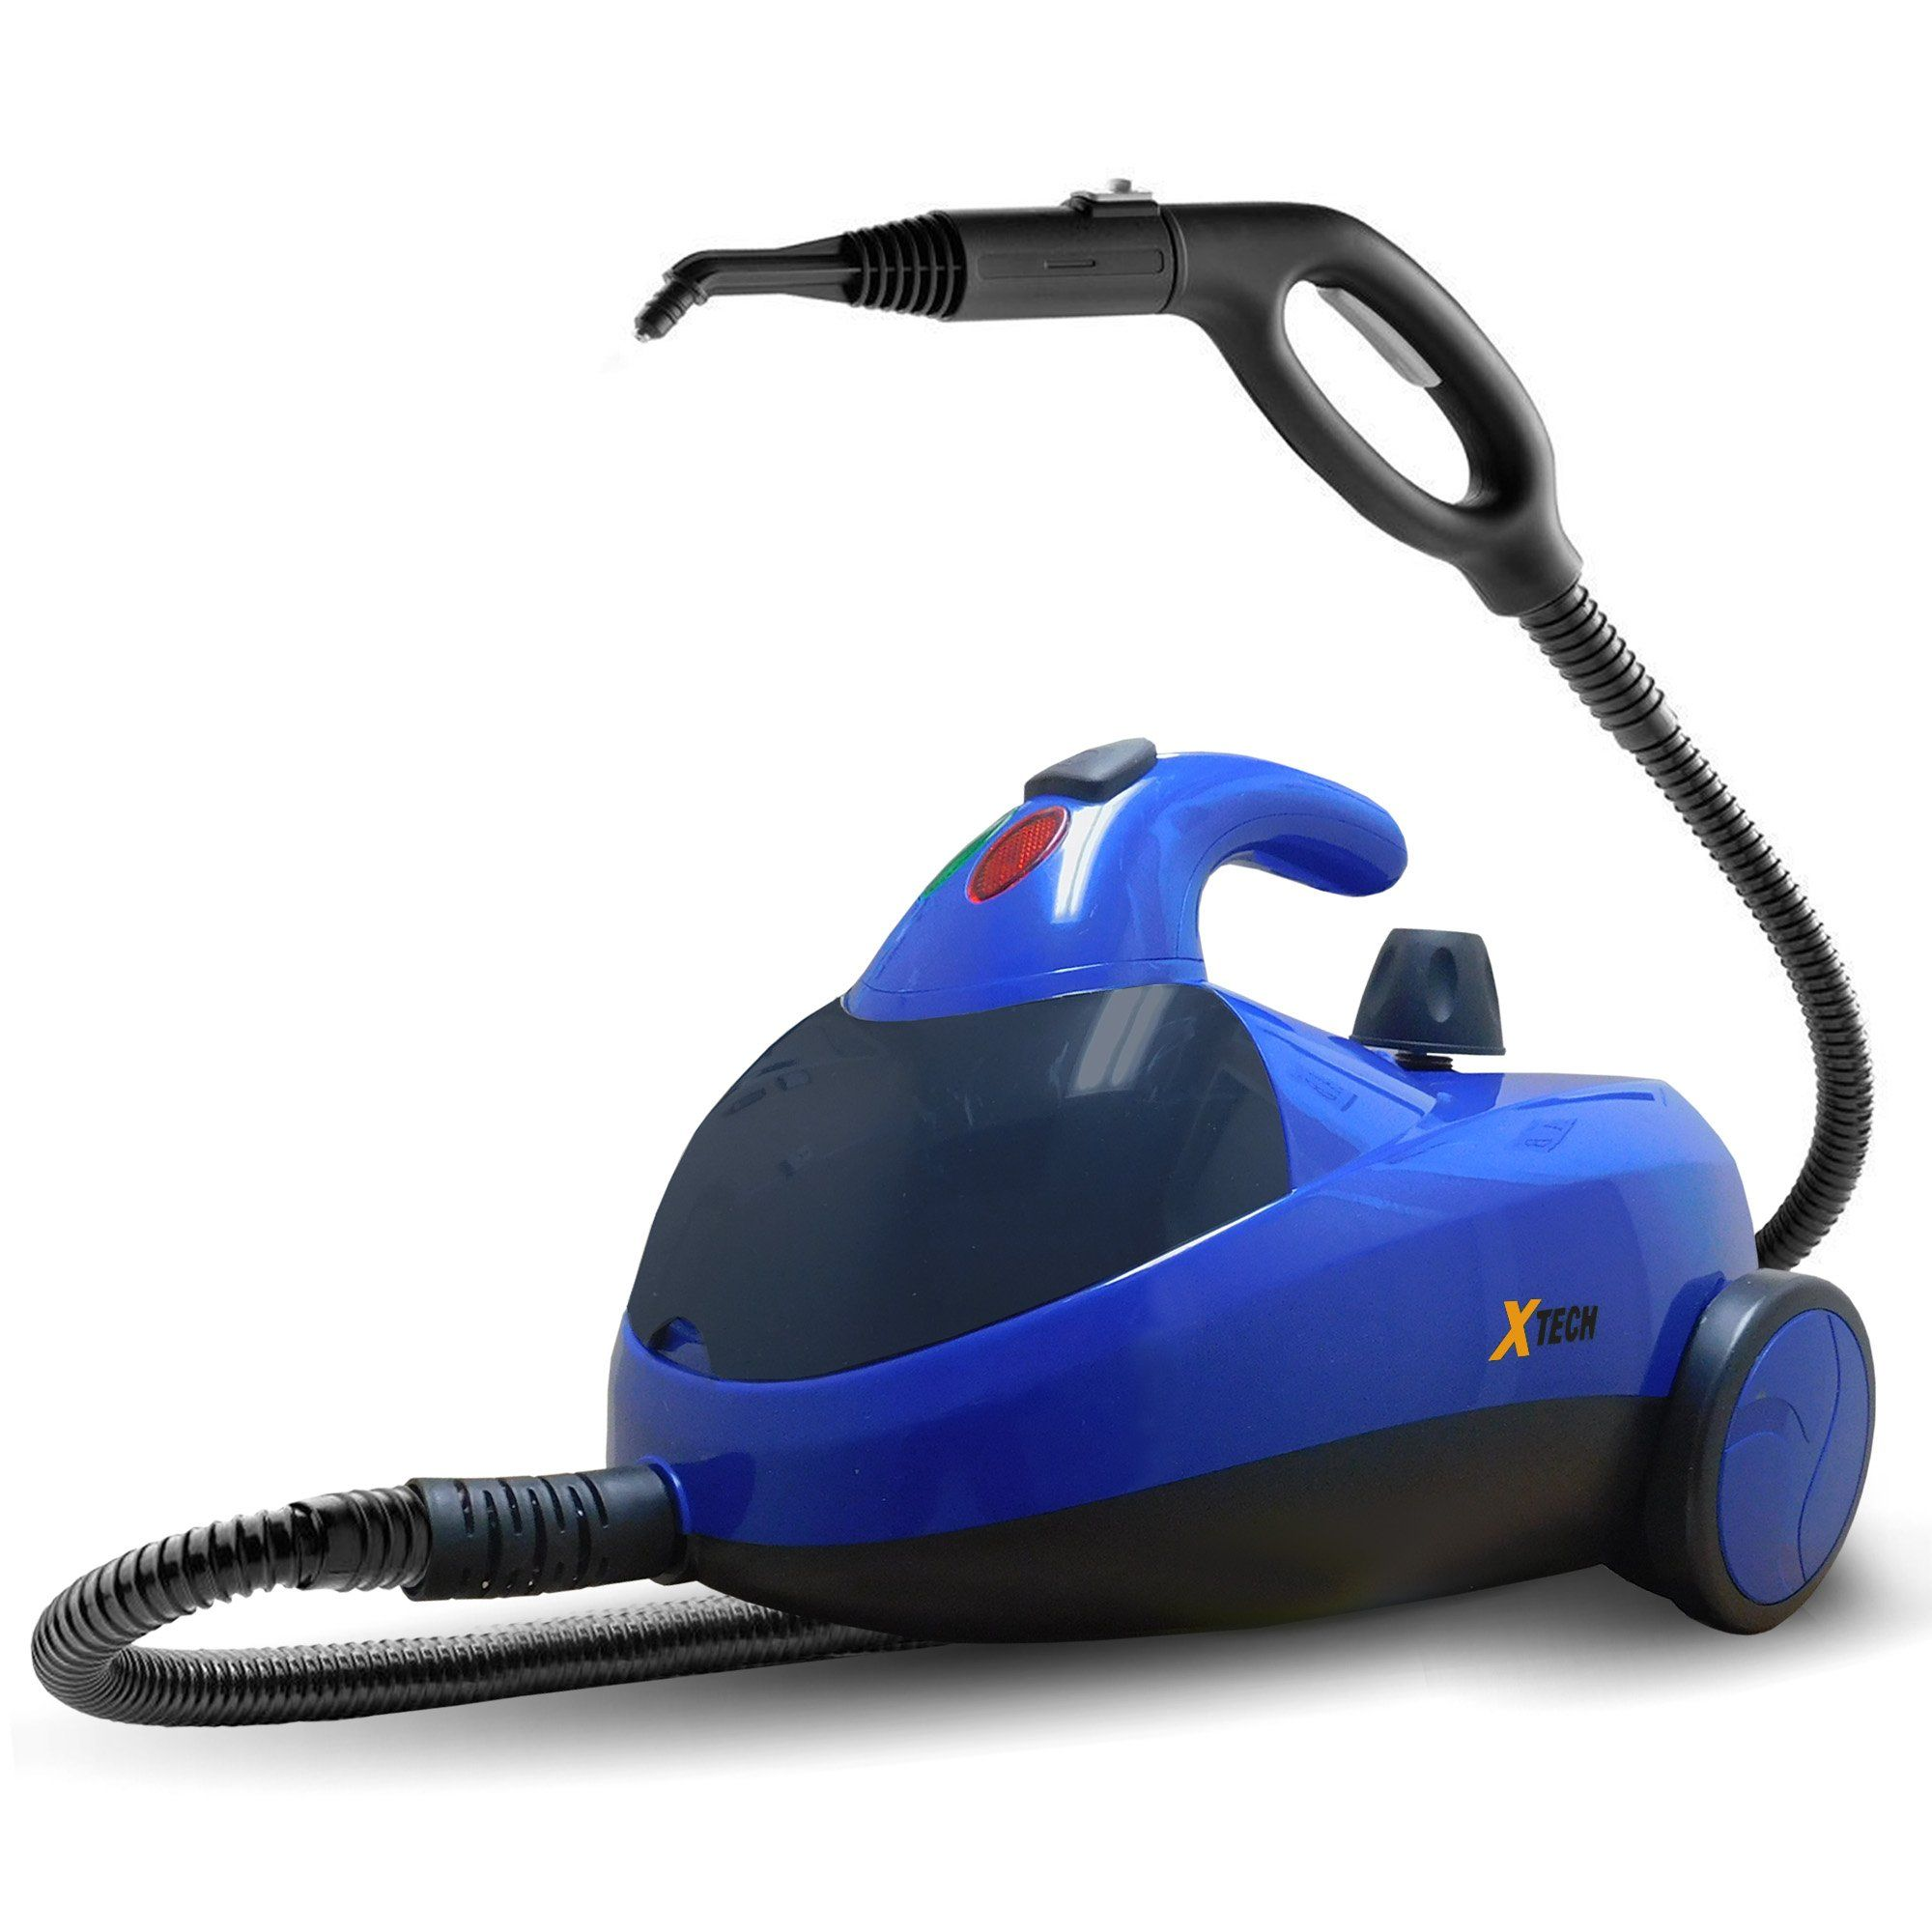 Xtech Xhsc200 Heavyduty 1500watts 50 Oz Canister Steam Cleaner